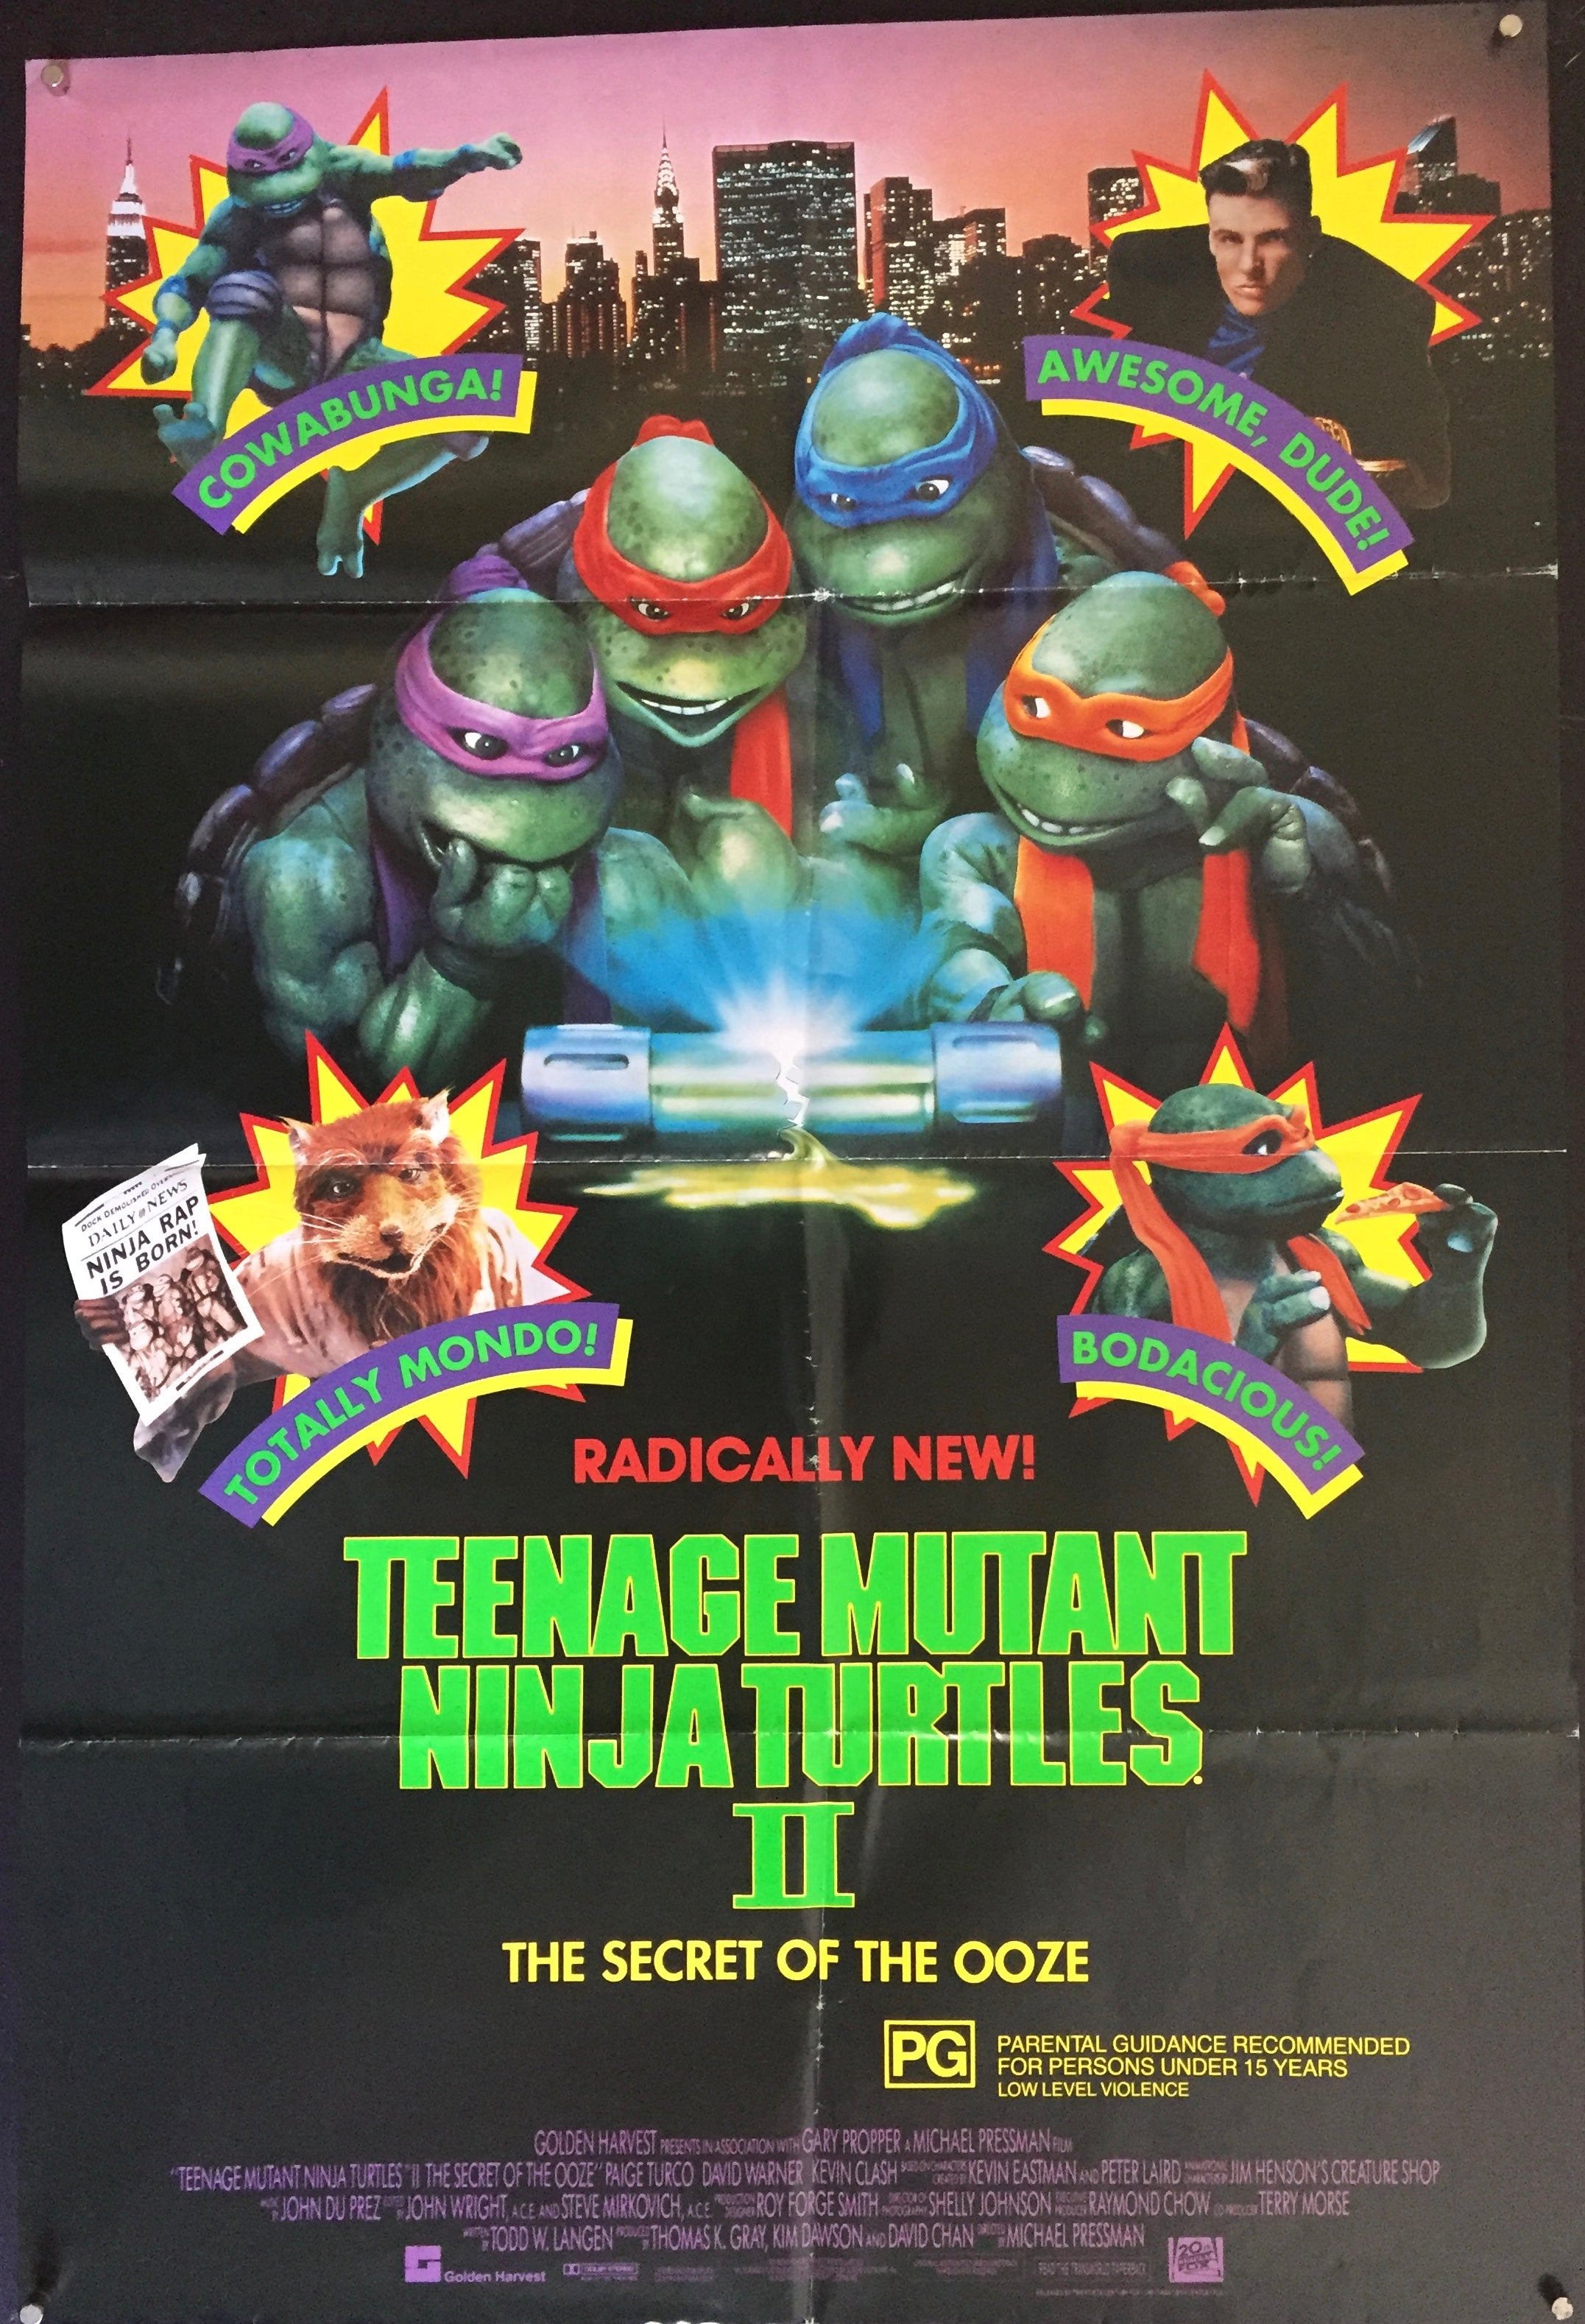 Teenage Mutant Ninja Turtles 2 Vertigo Posters